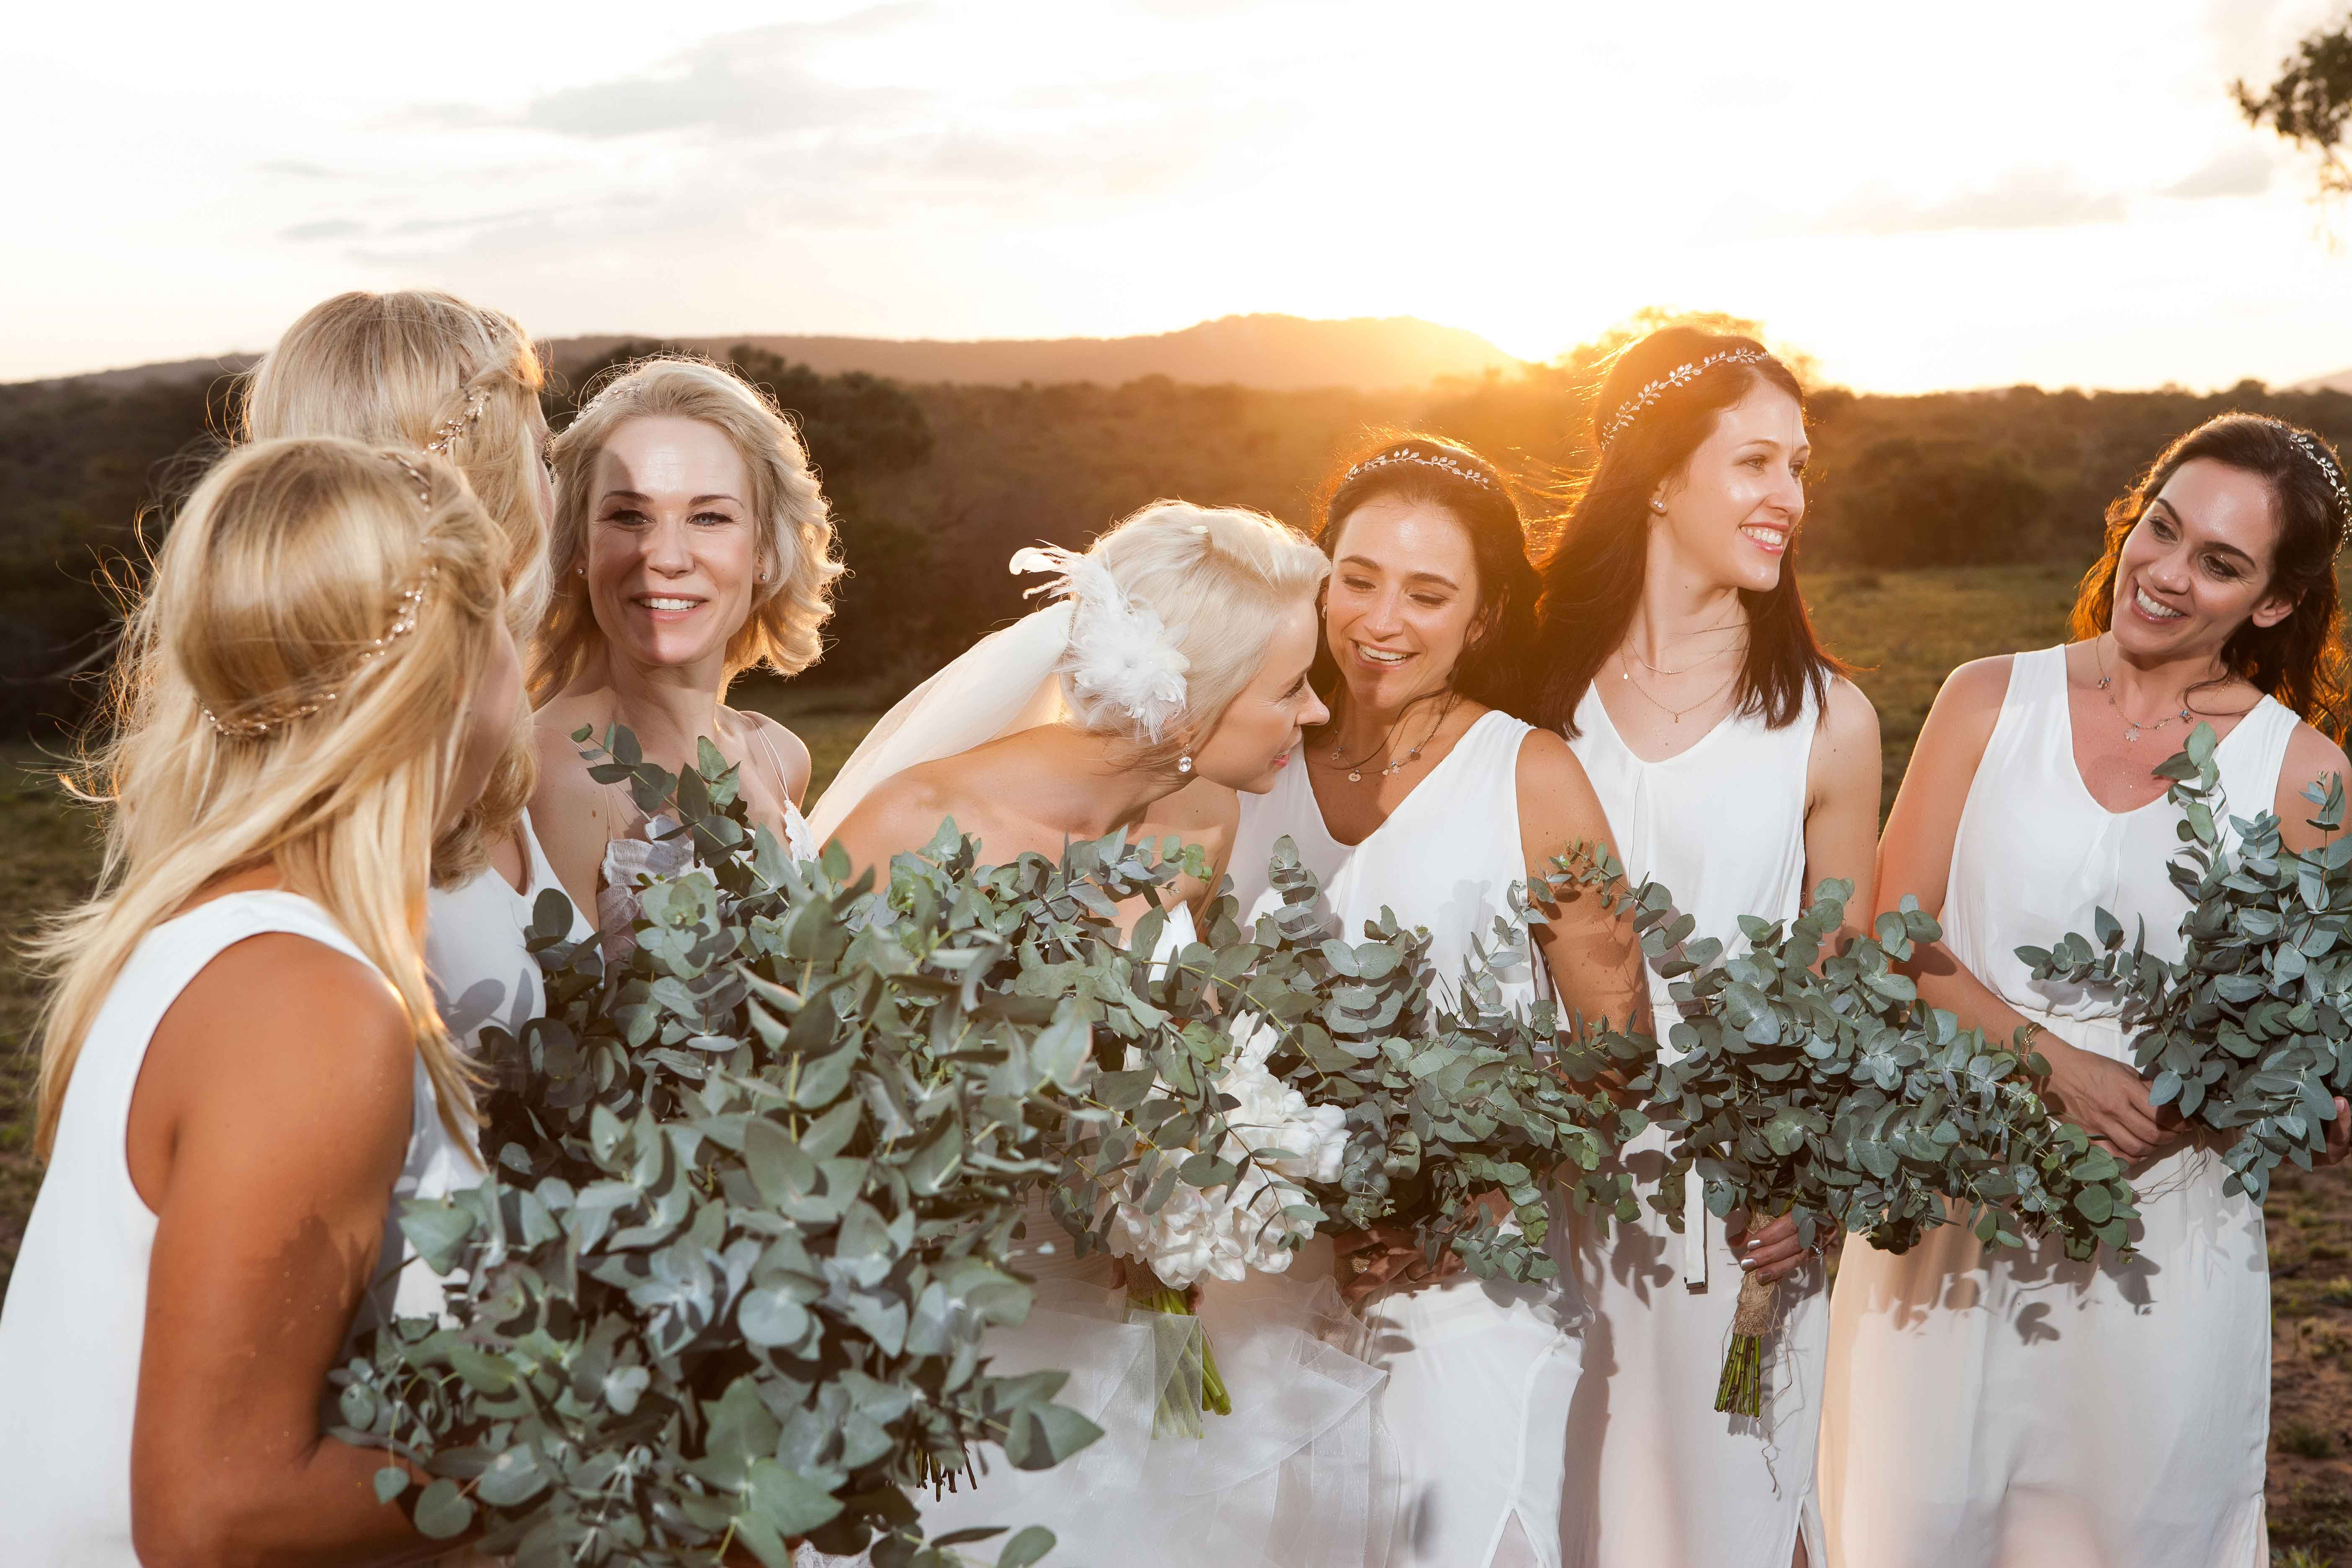 White bridesmaid dresses with leaf greenery bouquets